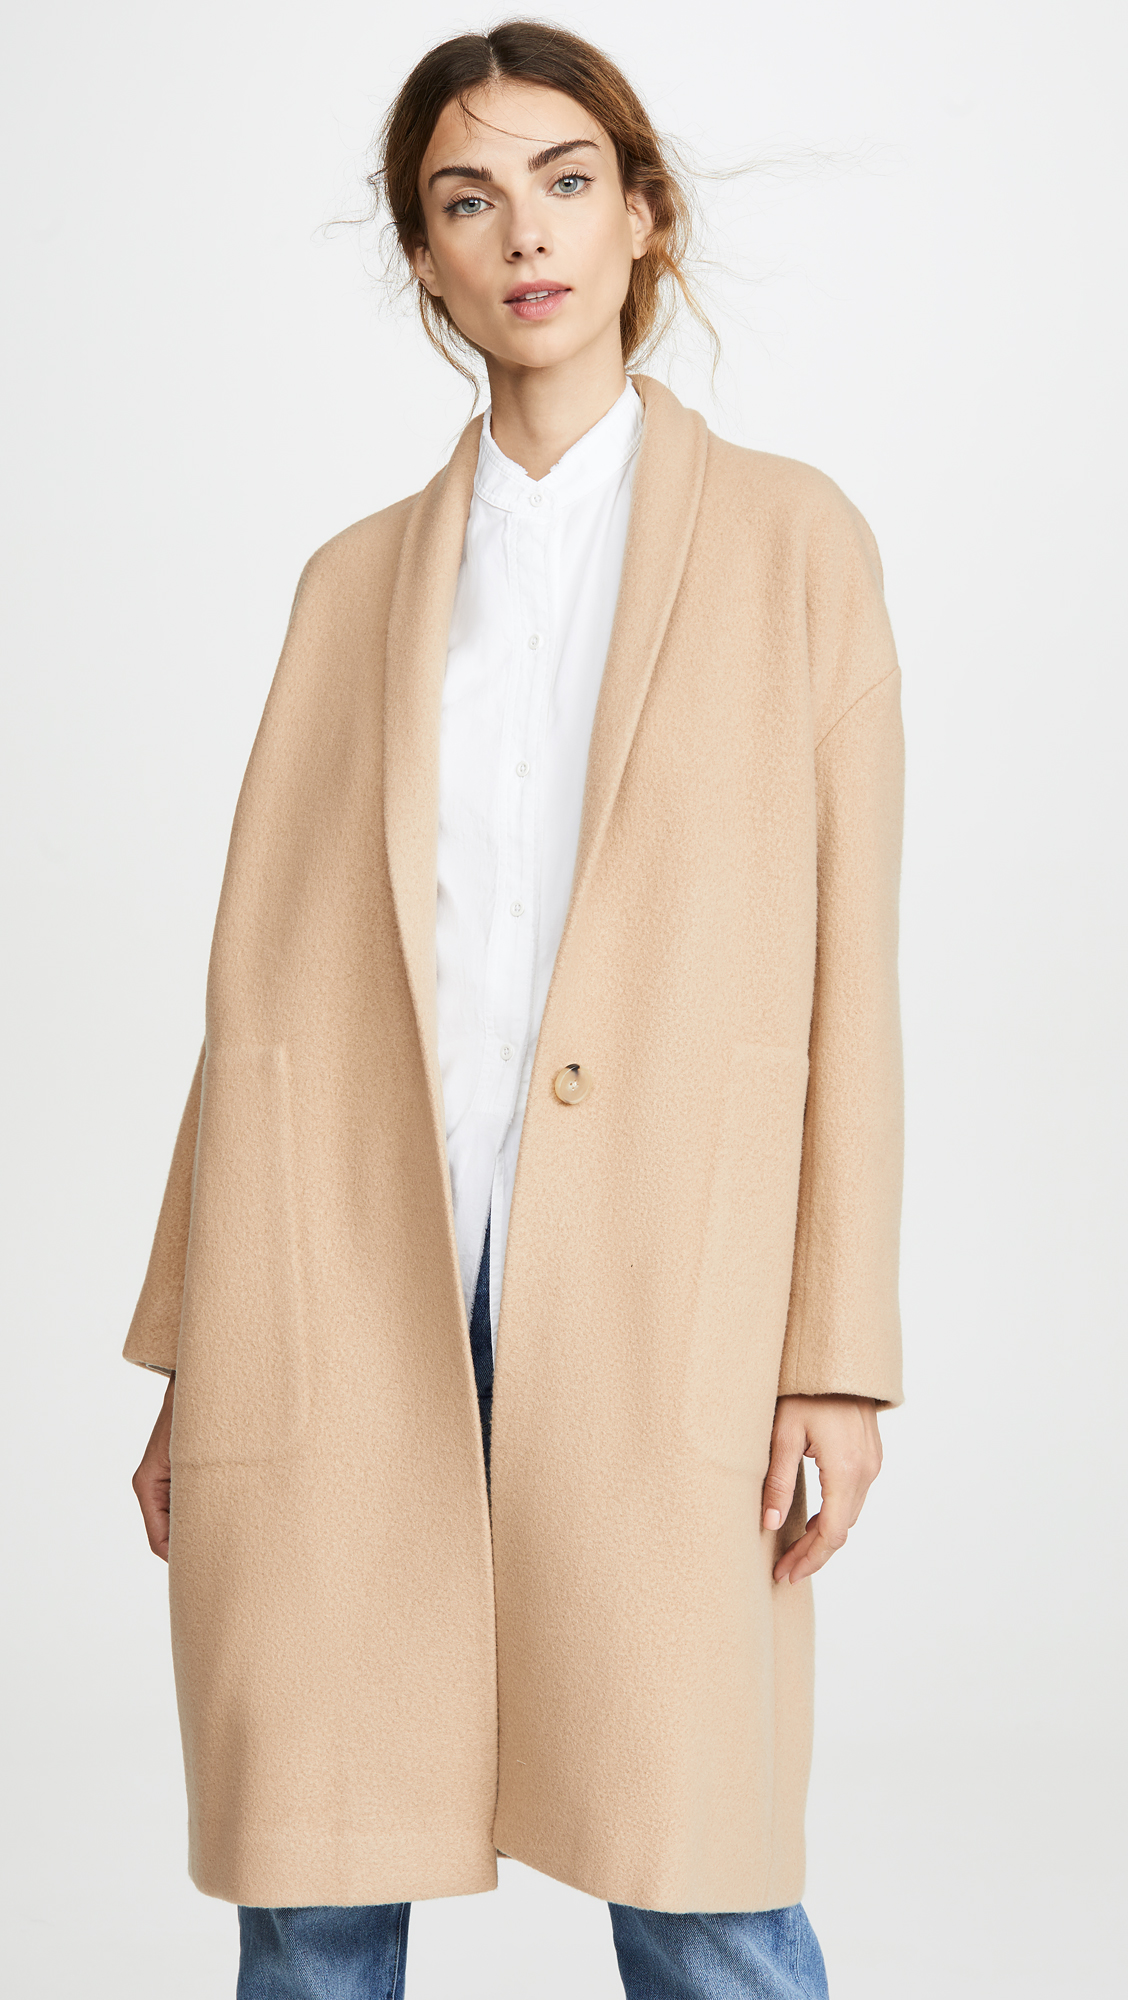 Tan Collarless Long Coat